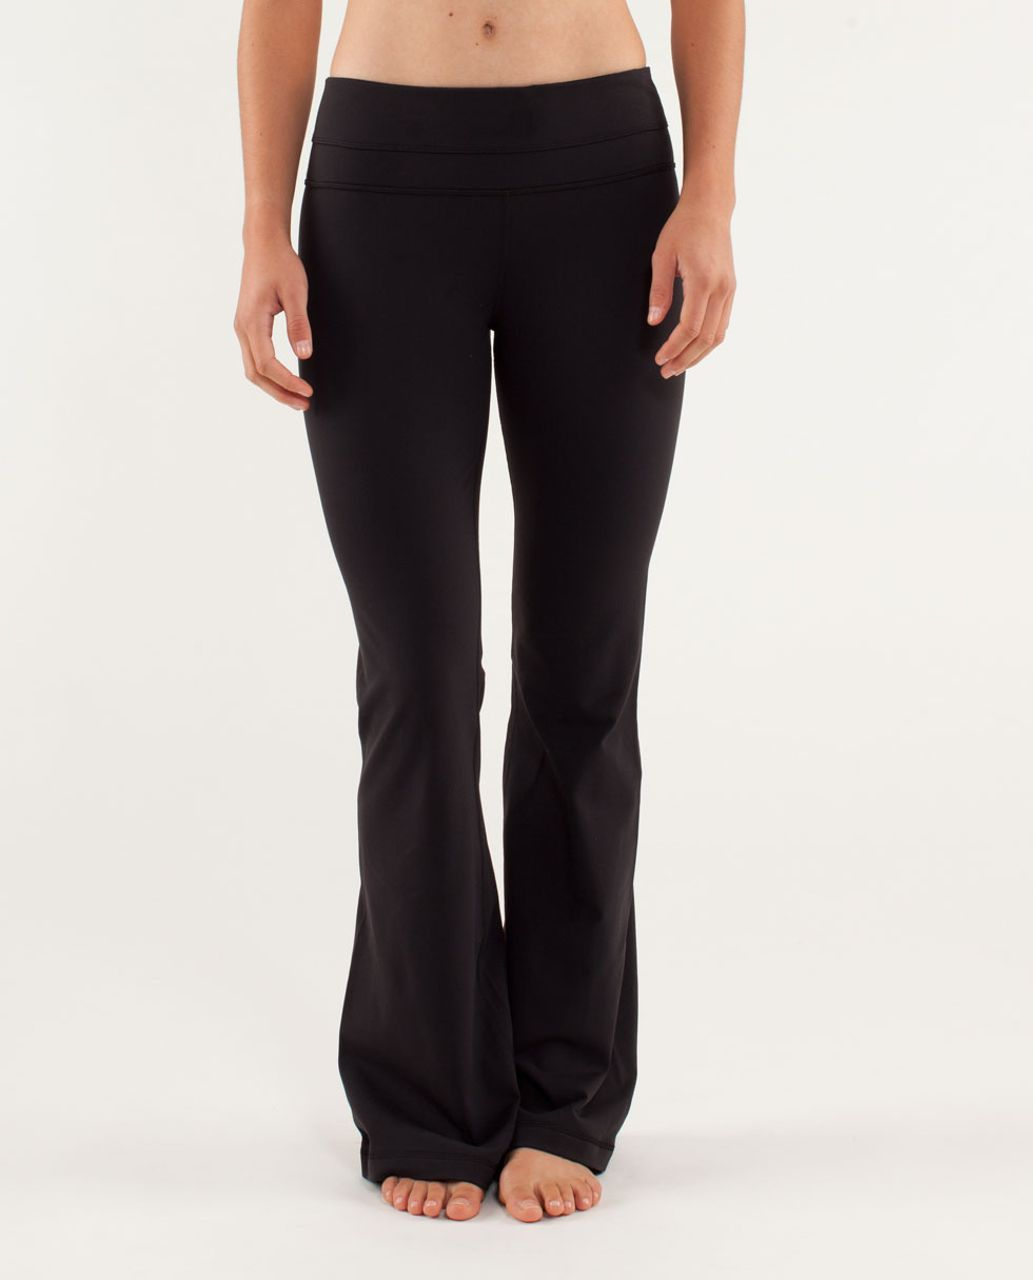 3884b9ee0 Lululemon Groove Pant  Brushed Slim (Regular) - Black - lulu fanatics